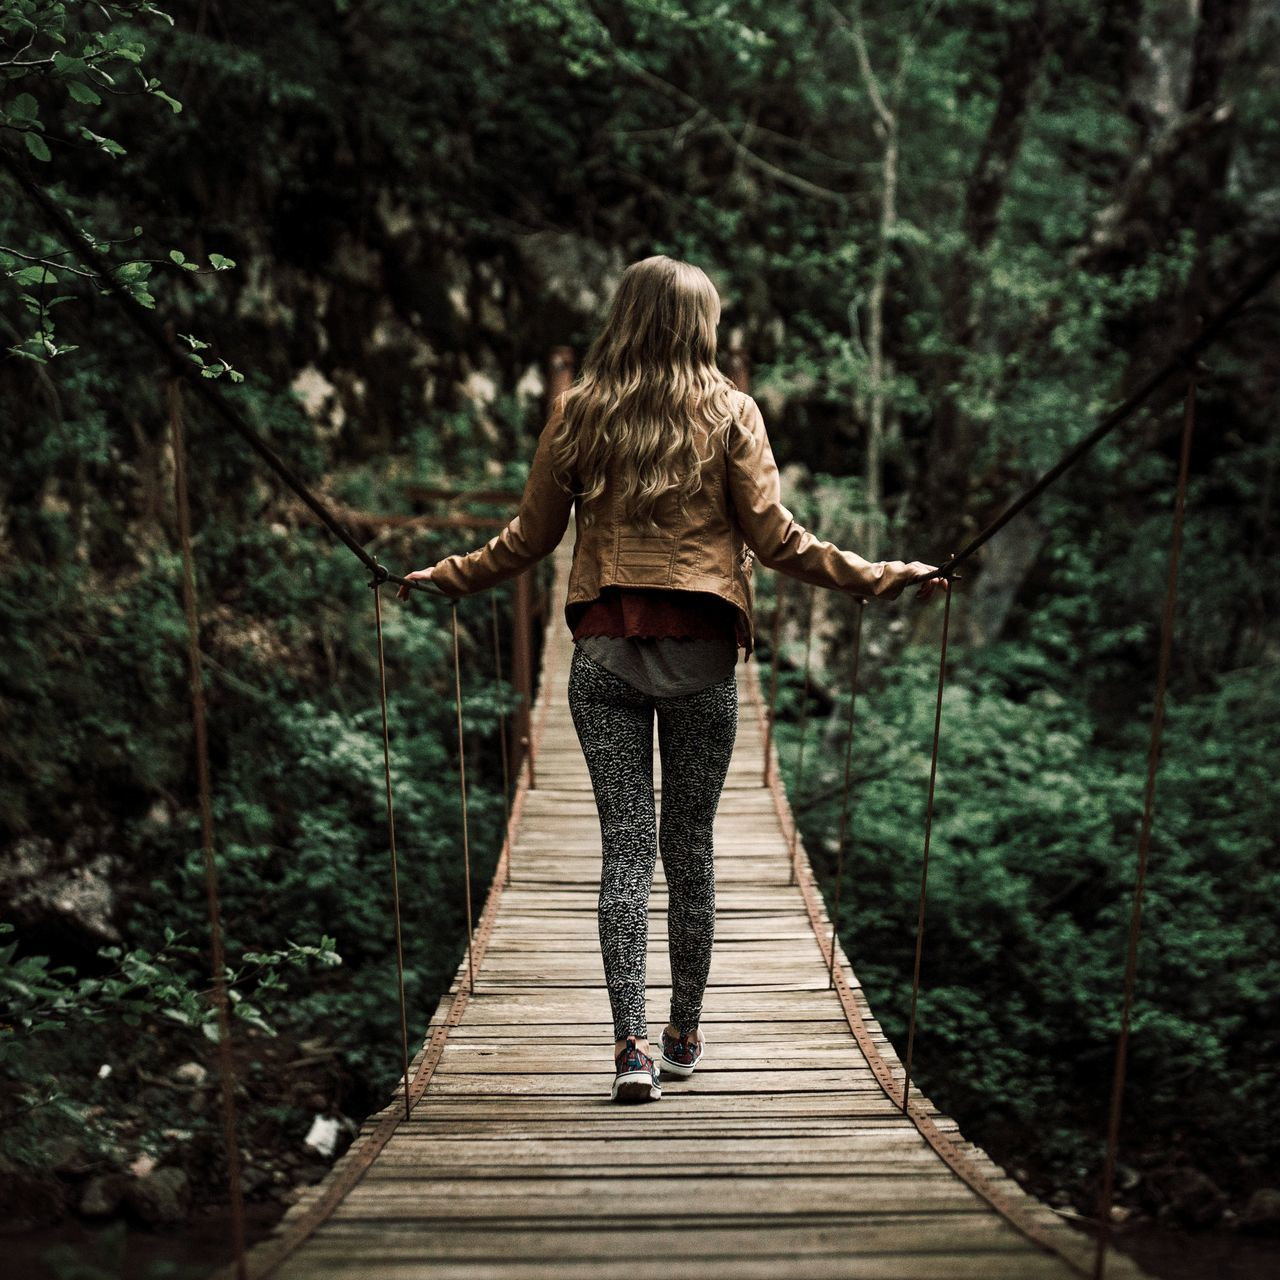 Beauty In Nature Blonde Day Forest Forest Photography Full Length Gate Girl Green Color Nature Nature Nature_collection One Person Only Women Outdoors People Real People Rear View The Great Outdoors - 2017 EyeEm Awards Travel Destinations Tree Walking Around Woman Young Adult Young Women